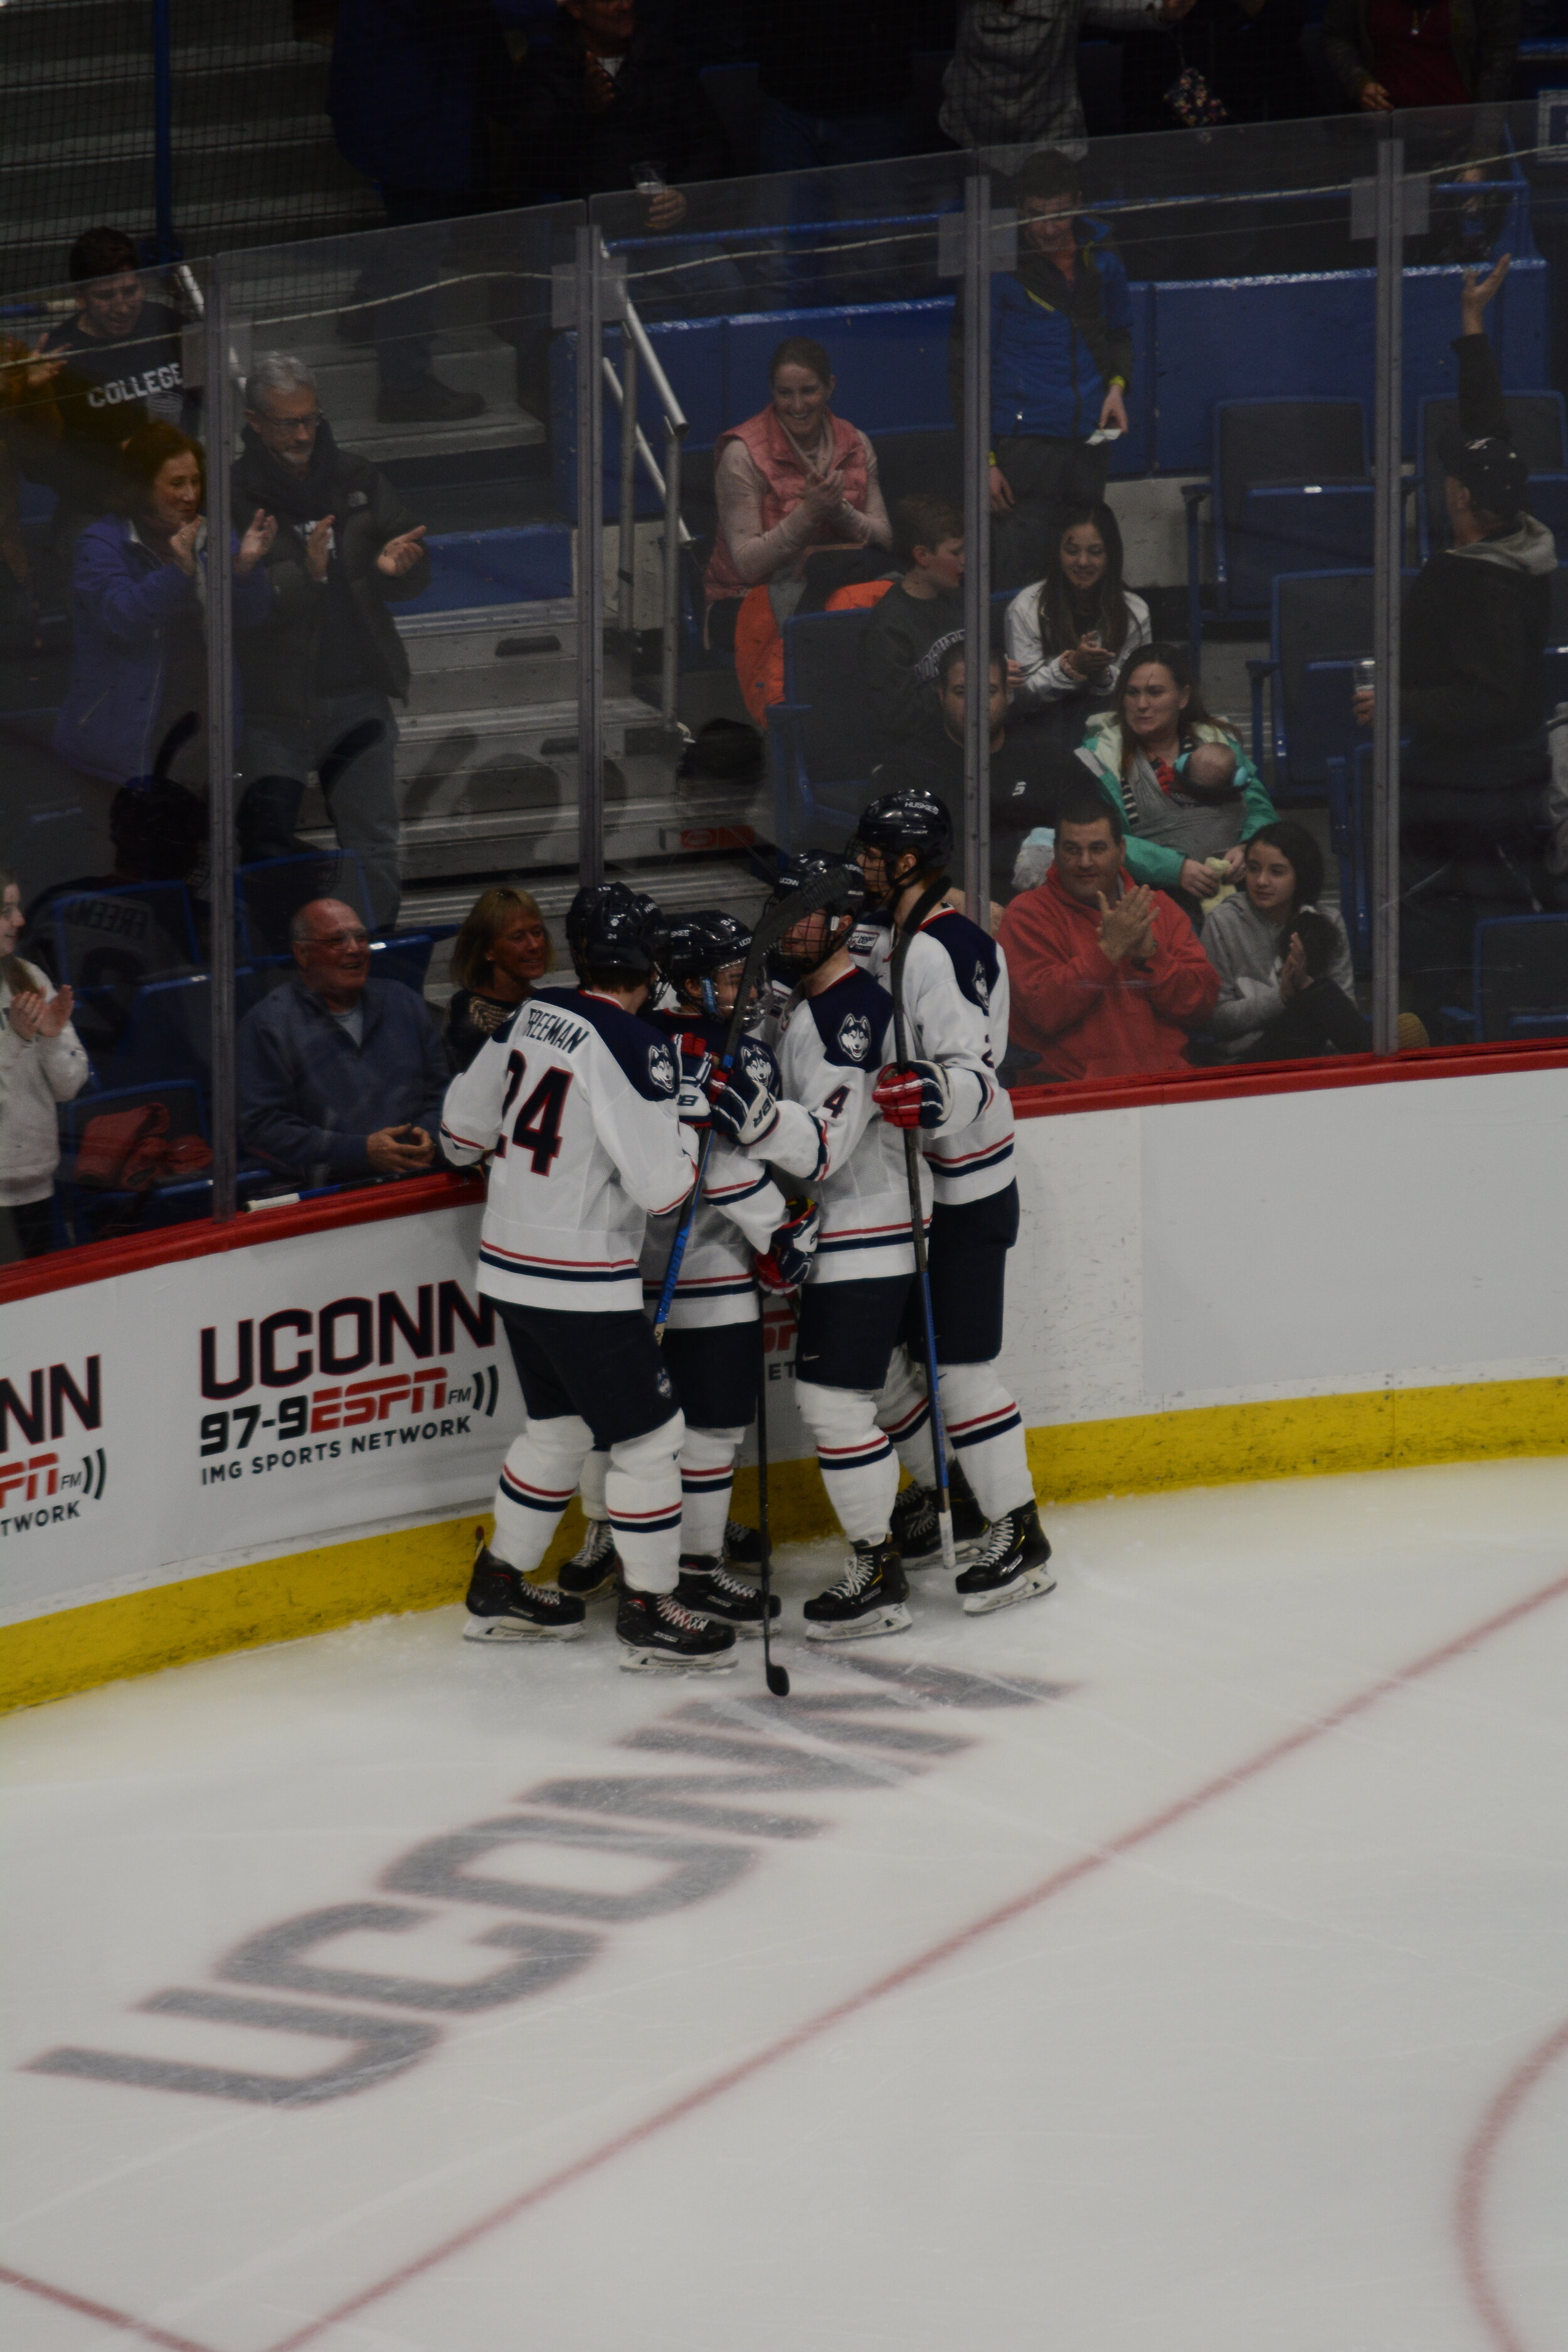 The Huskies won 4-3 against the UMass Minutemen on Friday. UConn got off just 20 shots compared to Sacred Heart's 48 but were able to walk away with the tie in a solid performance headlined by Vomacka's career night.  Photo by Eric Wang/The Daily Campus.